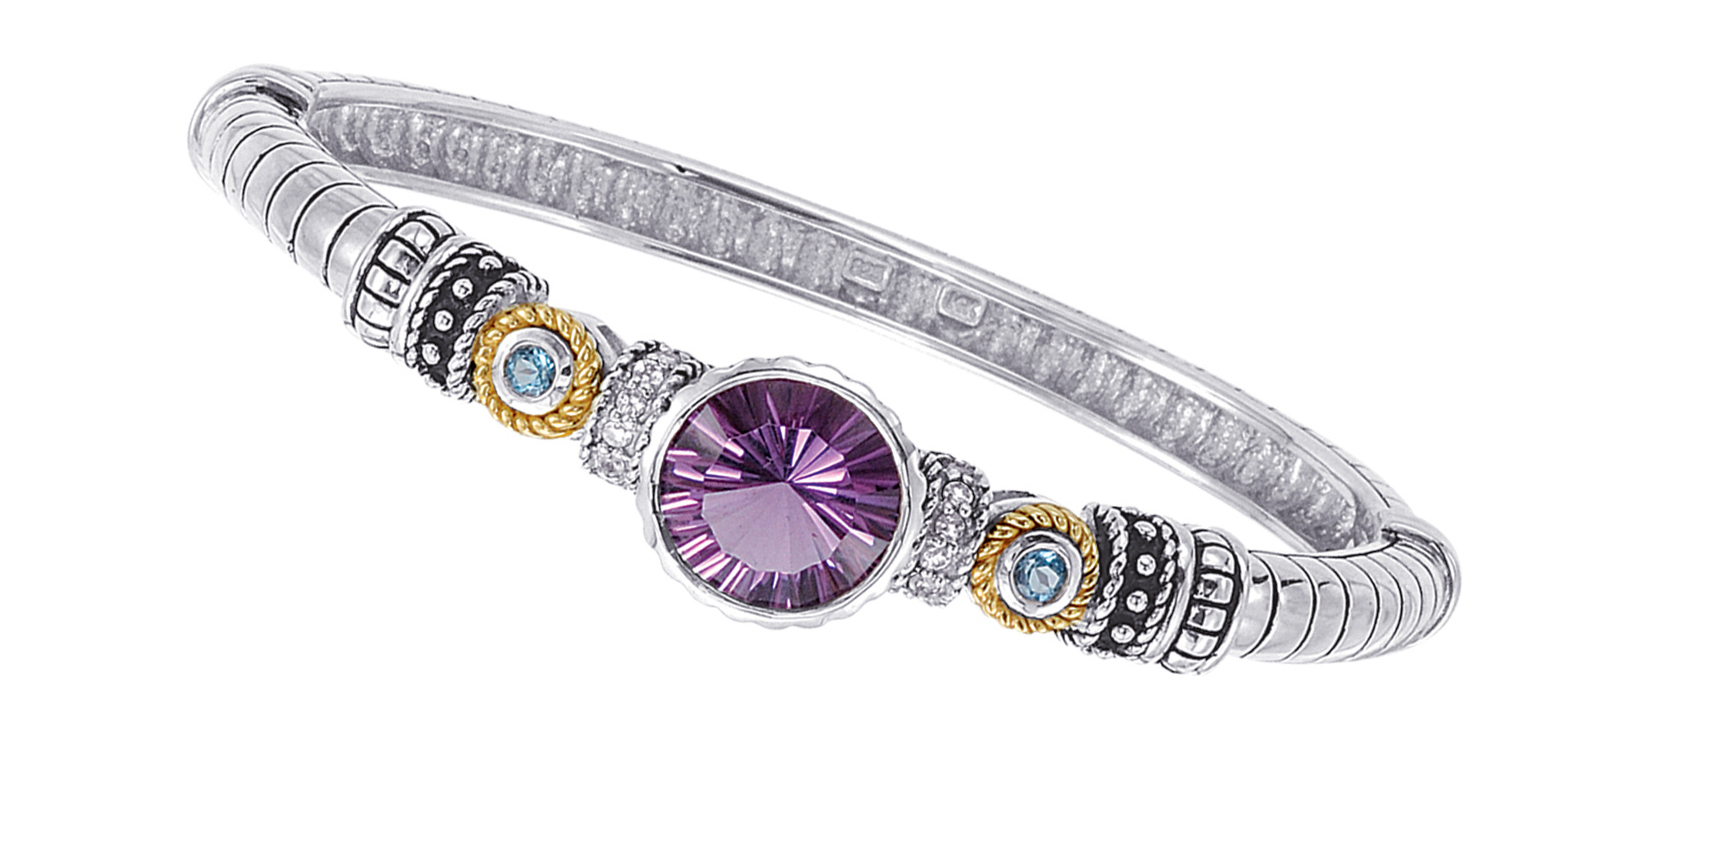 Jewelry - Alesandro Menegati 14K Accented Sterling Silver Bangle with White and Blue Topaz and Amethyst.